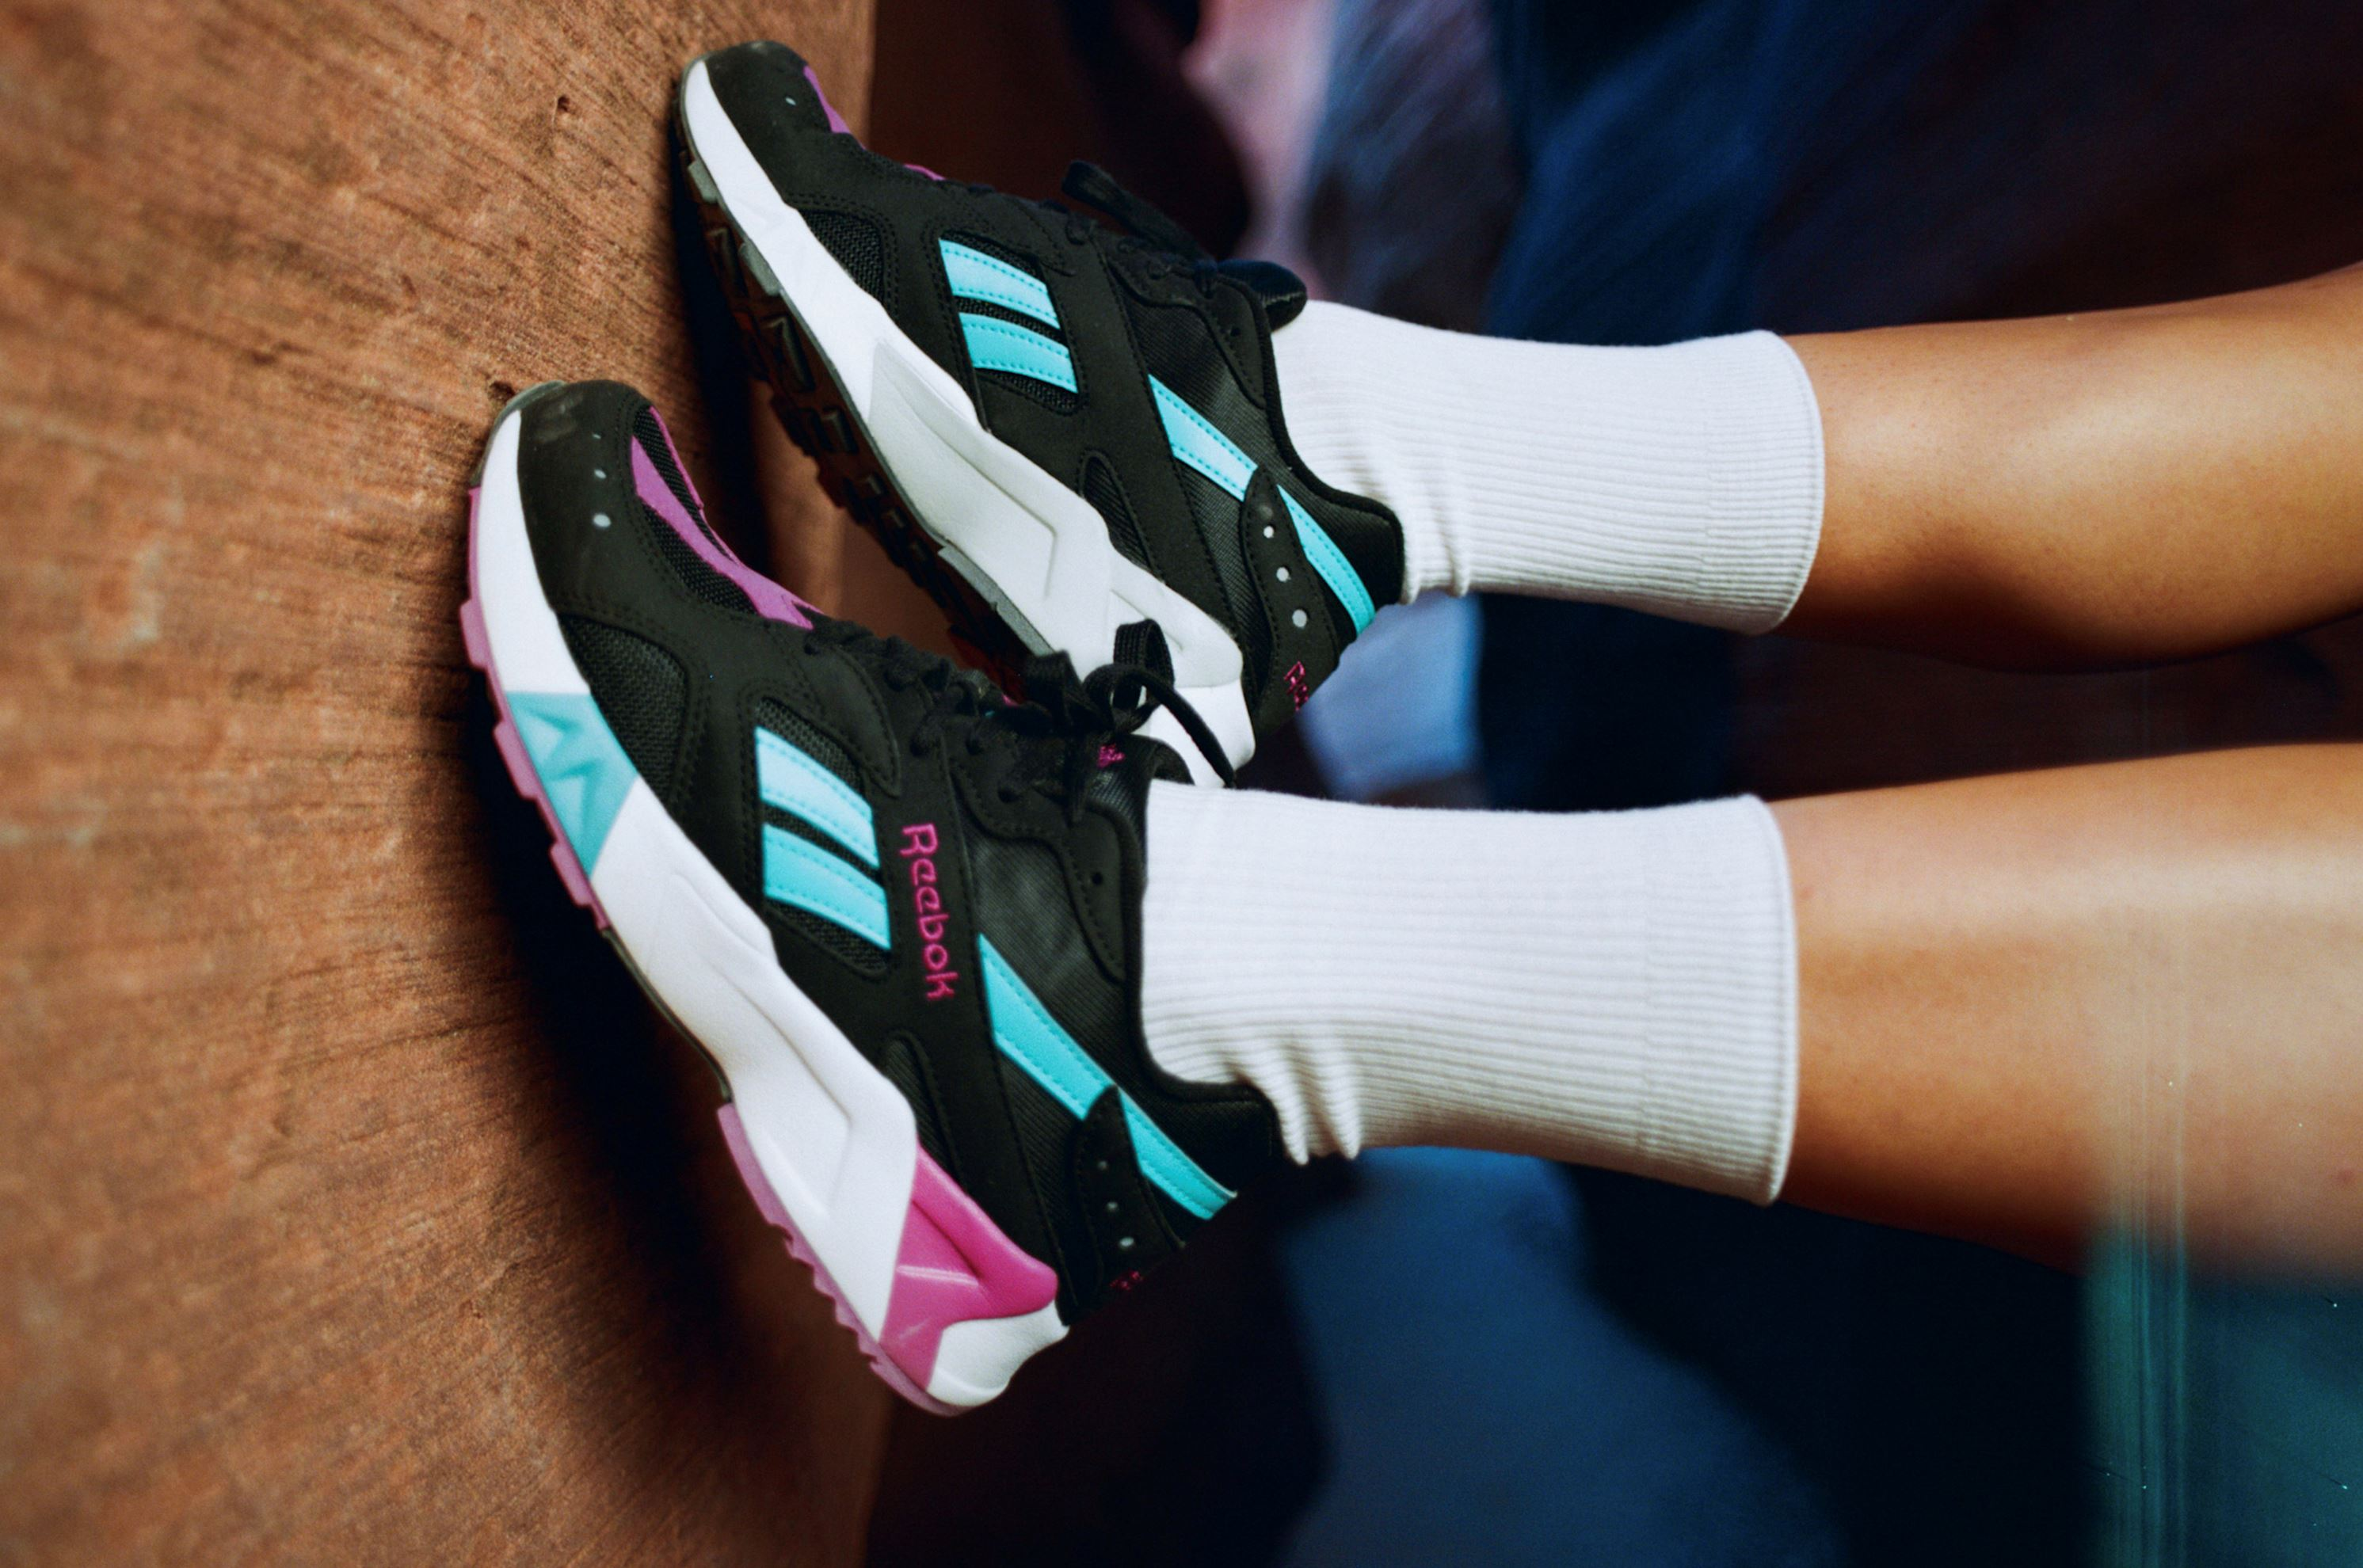 c94f92af4e Reebok Goes Cross Country to Get Back to the Aztrek's Off-Road Roots ...